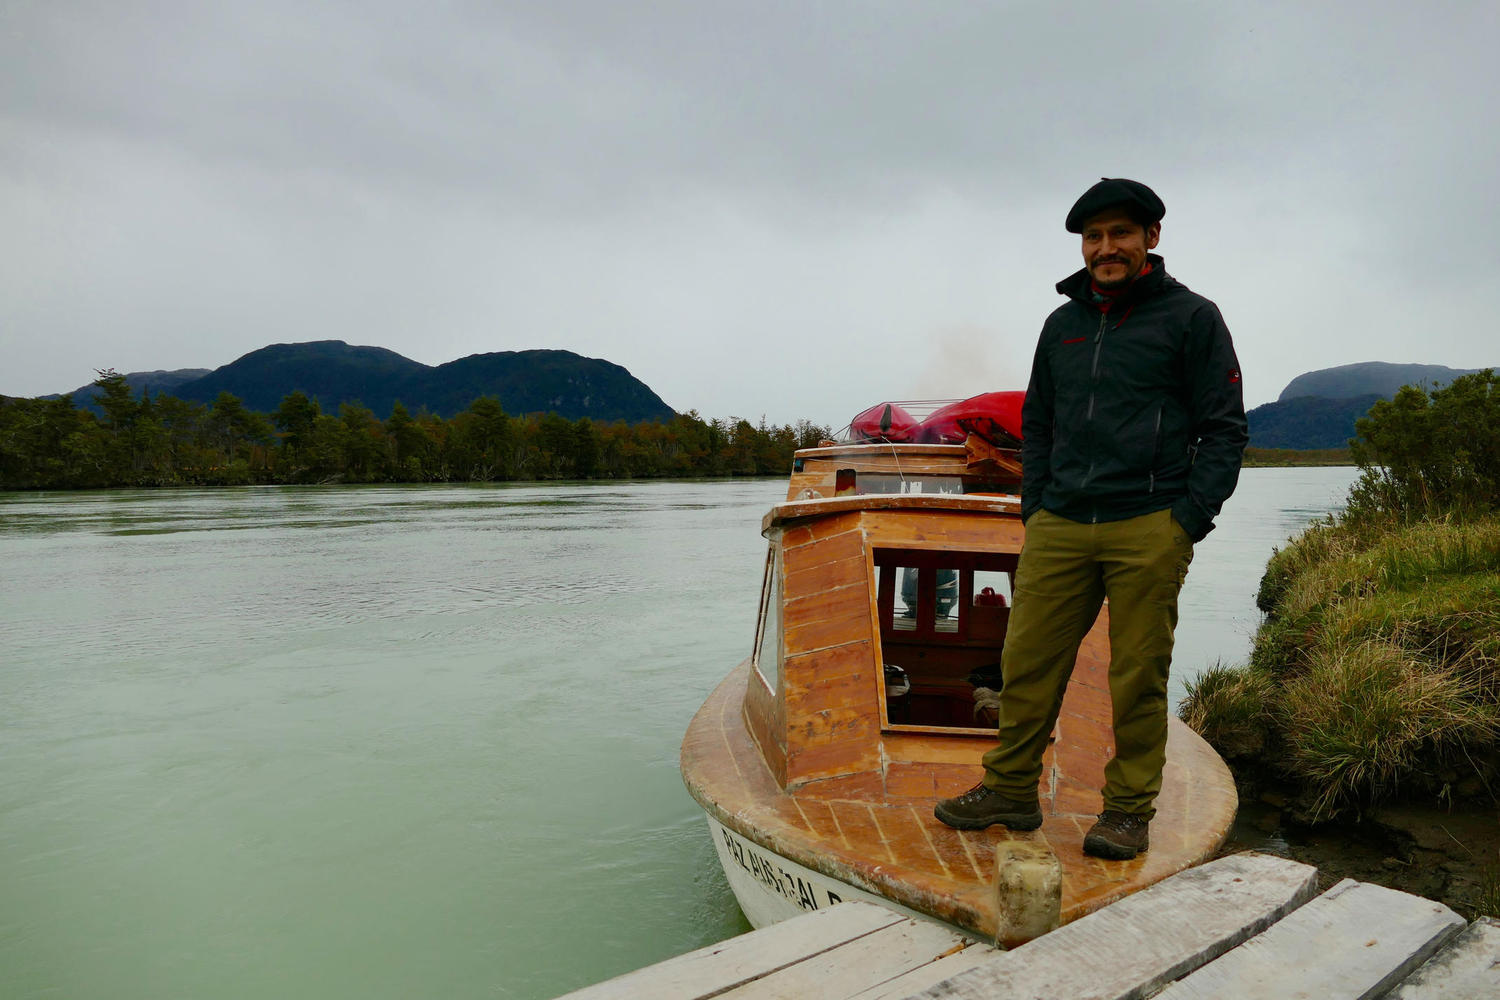 Captain on the shores of the Baker River in Chilean Patagonia